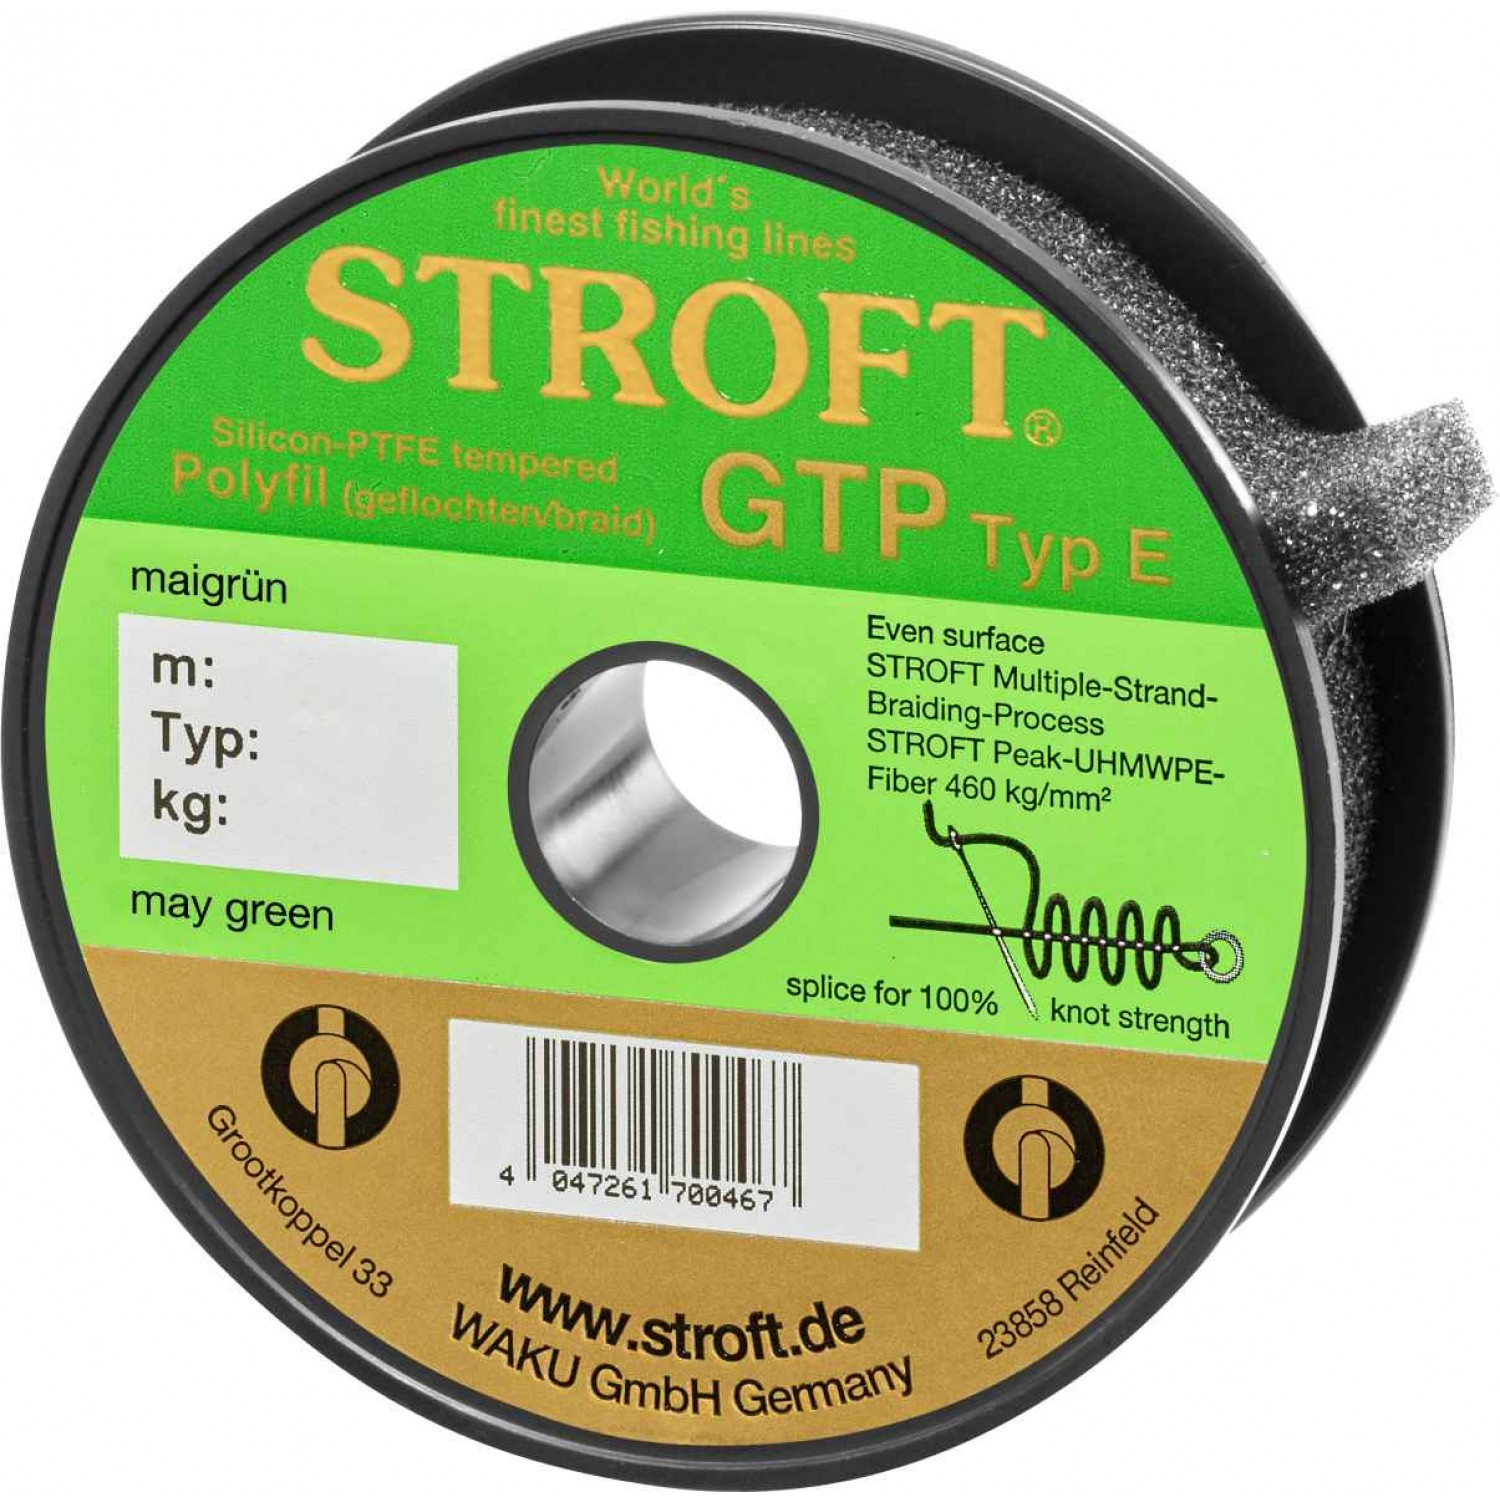 Stroft GTP May Green 150m Typ E